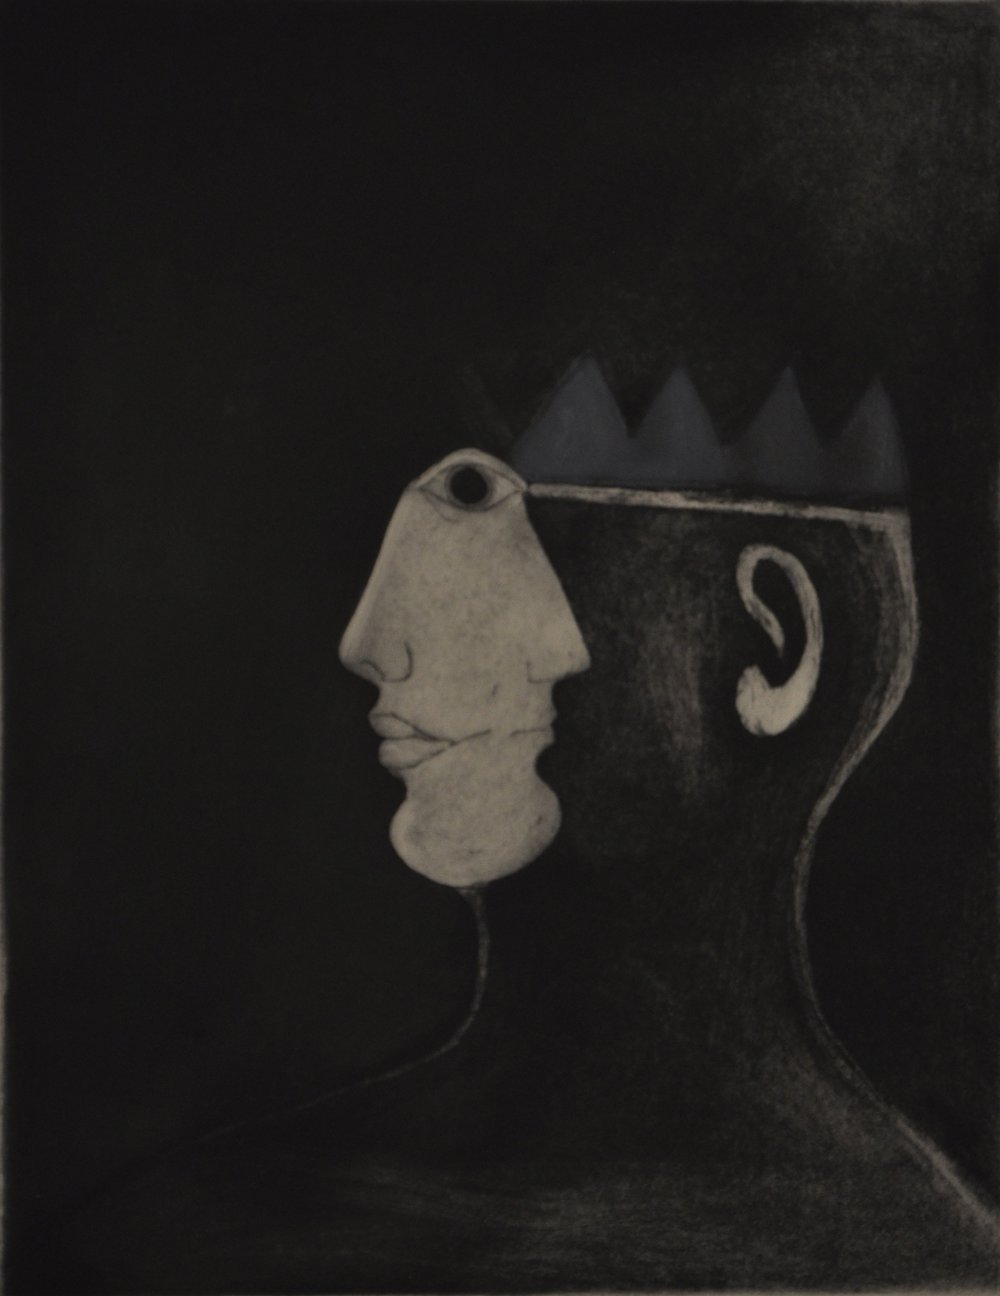 """Crowned Head"" Series"